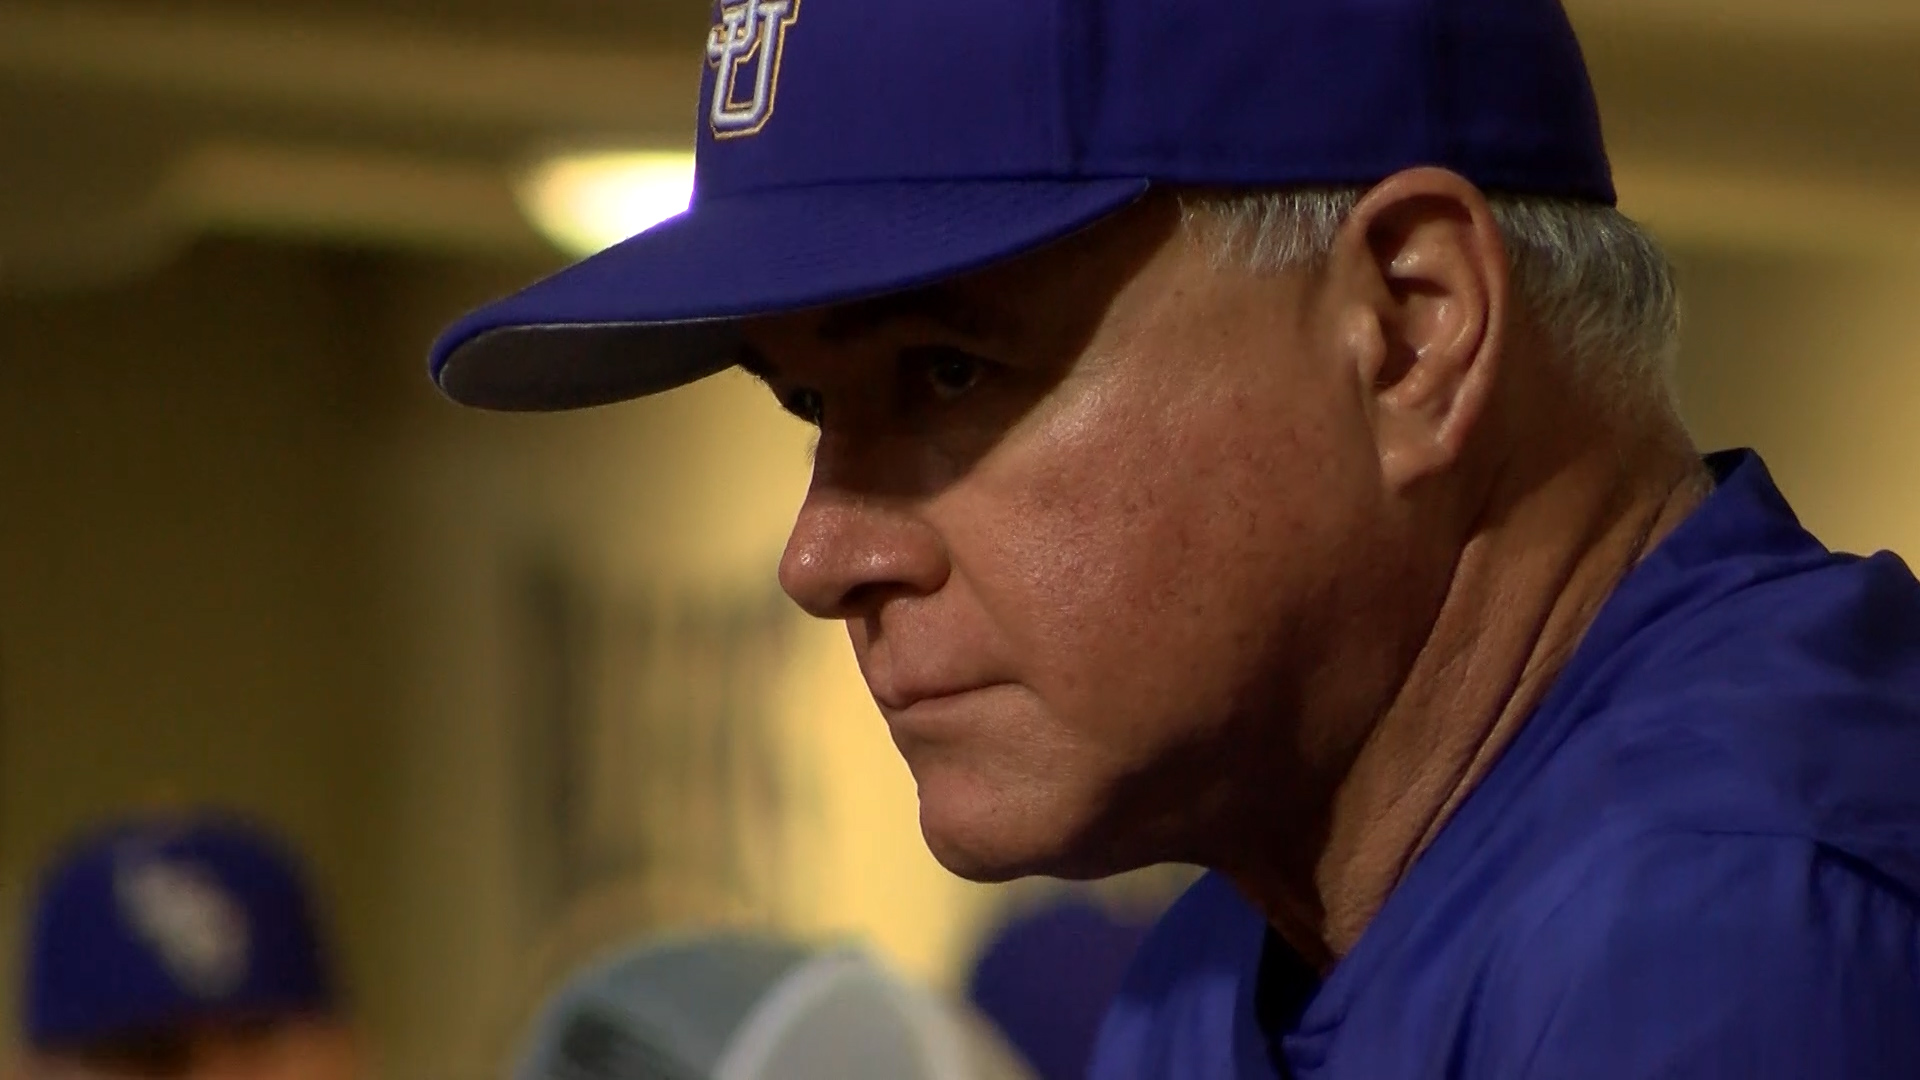 lsu baseball coach paul mainieri vs bryant gm1_1550896604672.jpg.jpg